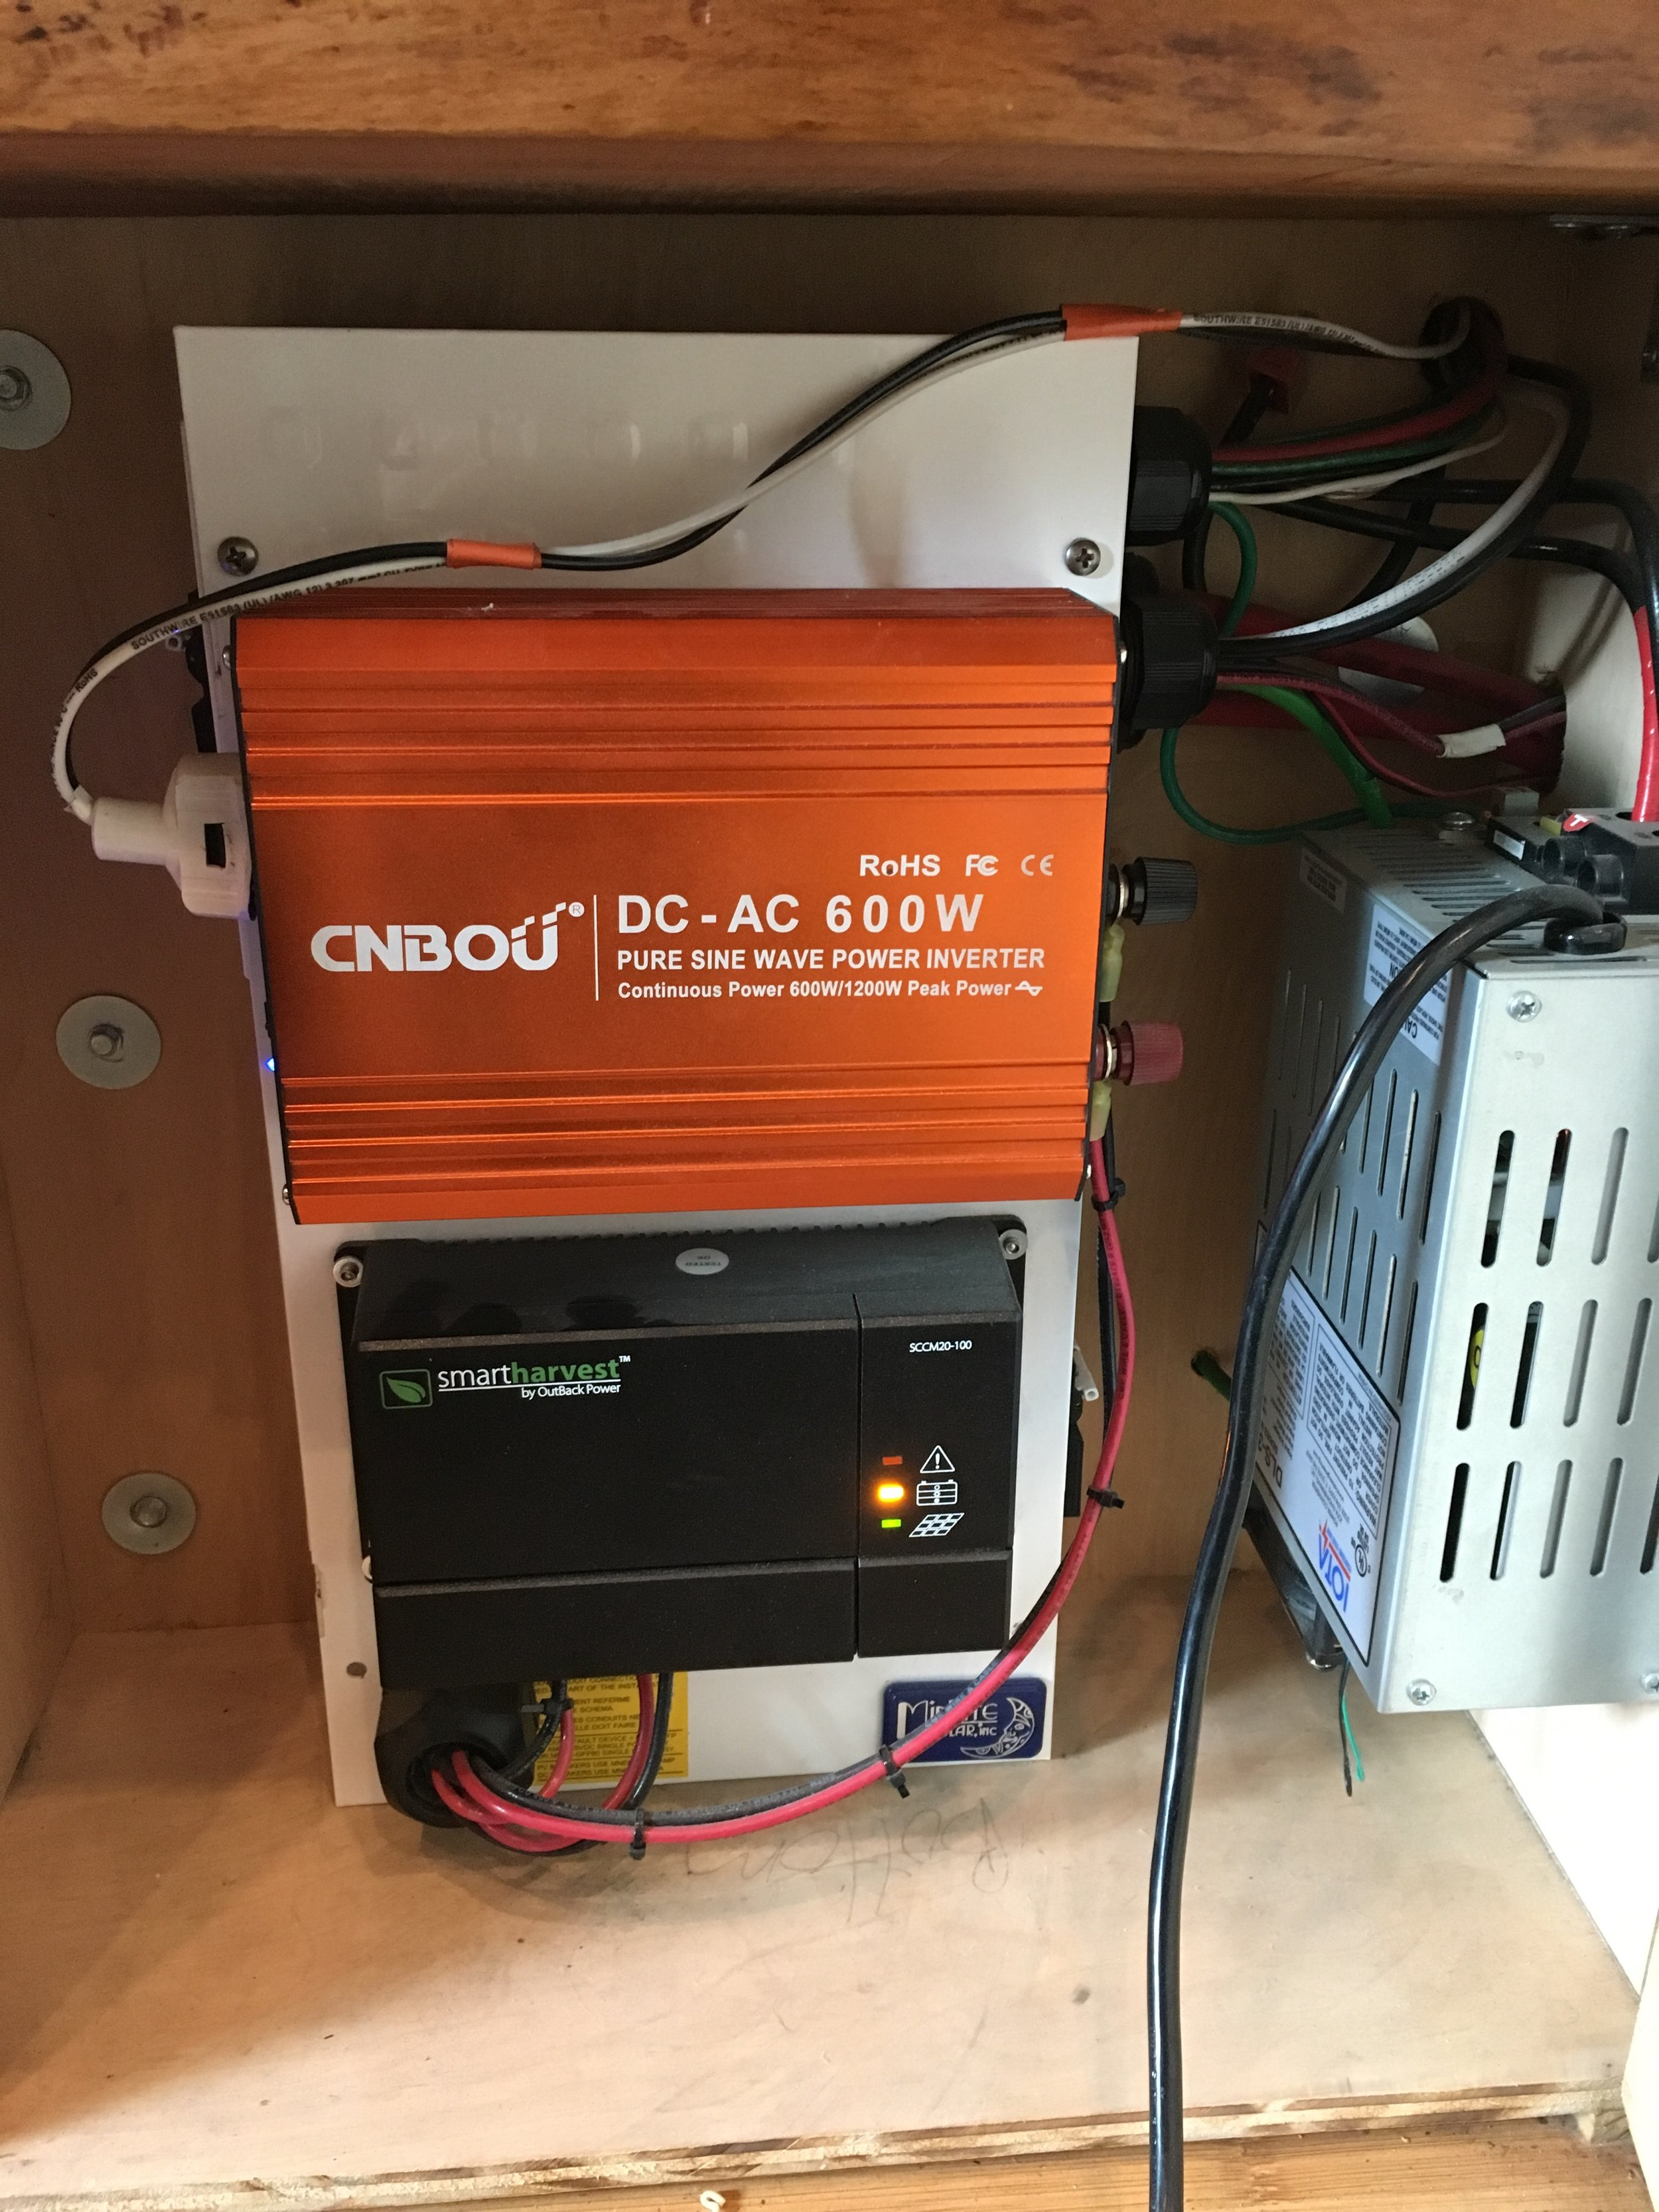 The Inverter and the Charge Controller are mounted on the front of the breaker box